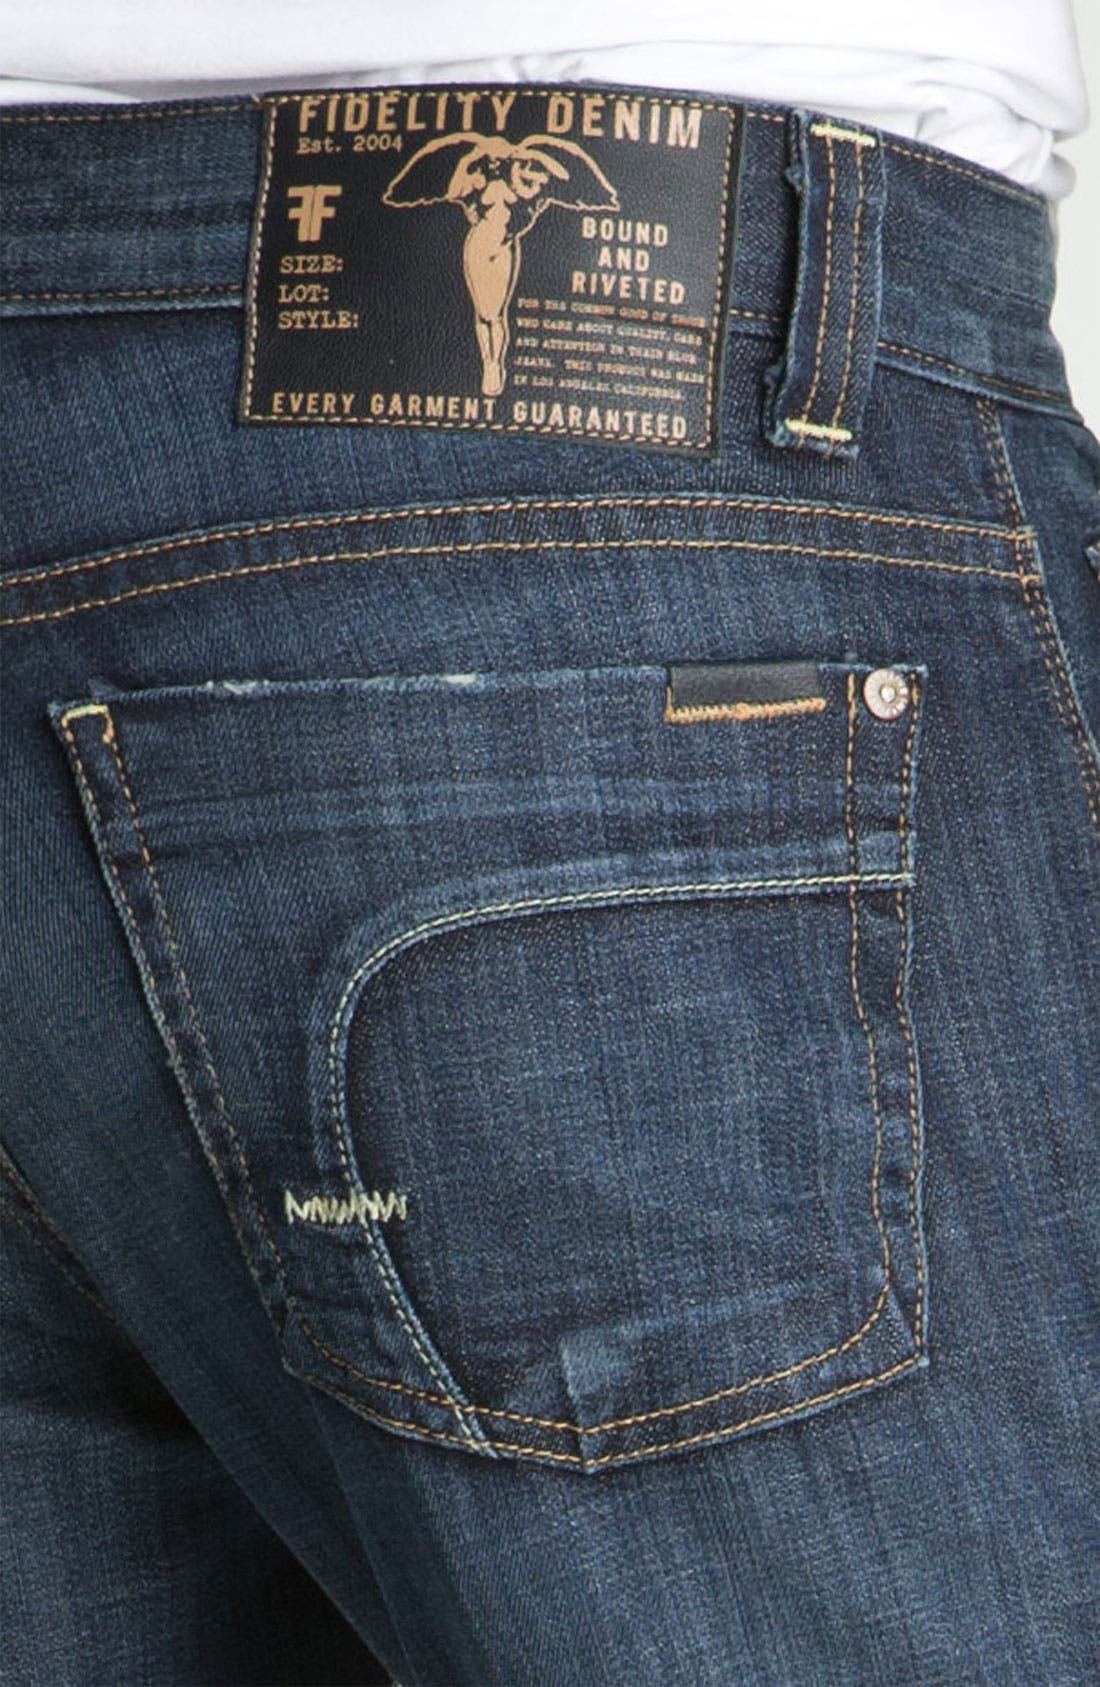 Alternate Image 4  - Fidelity Denim 'Camino' Relaxed Leg Jeans (Generation Blue)